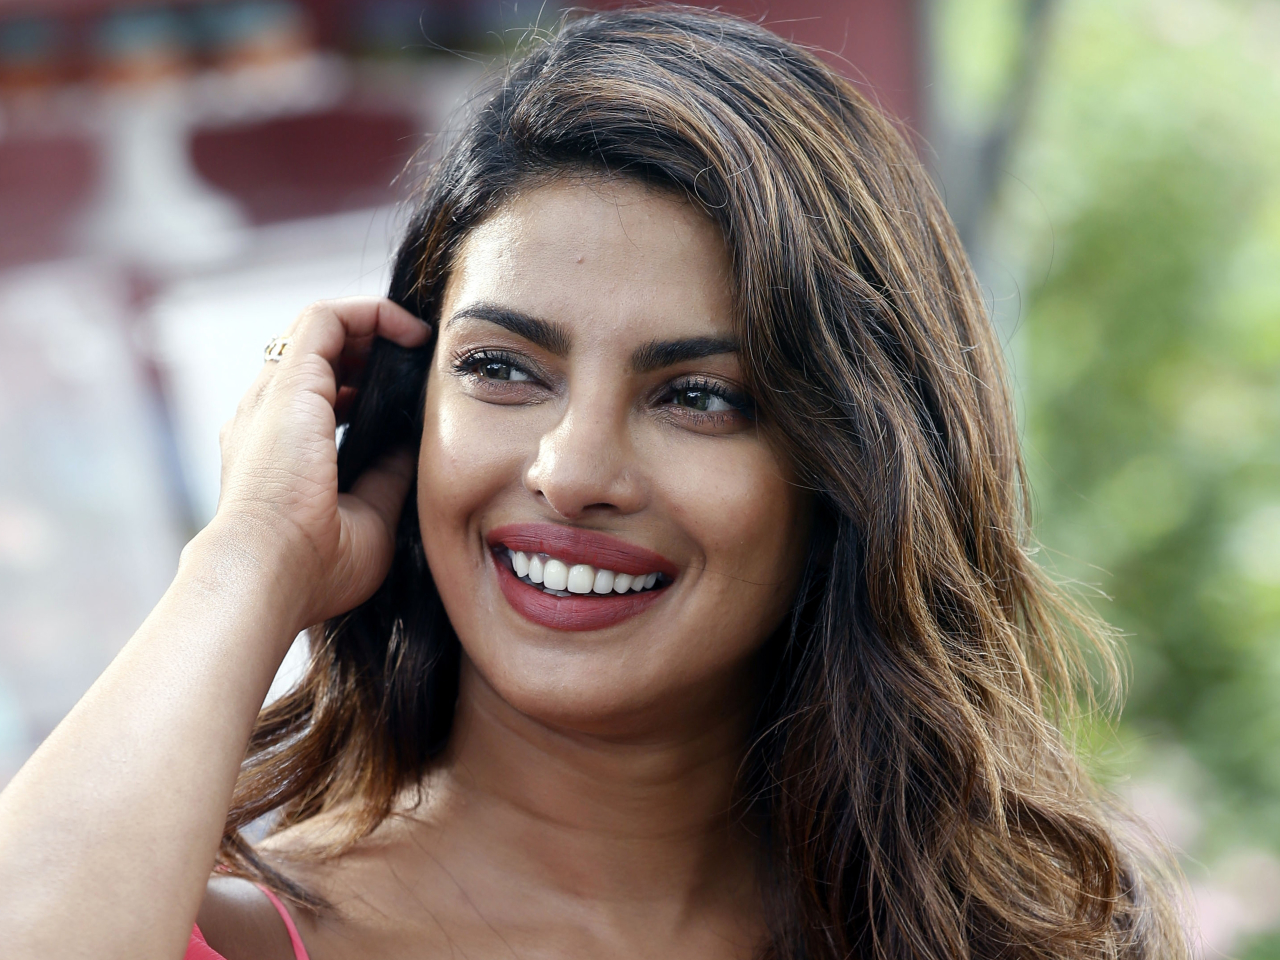 priyanka chopra 4k ultra - photo #14